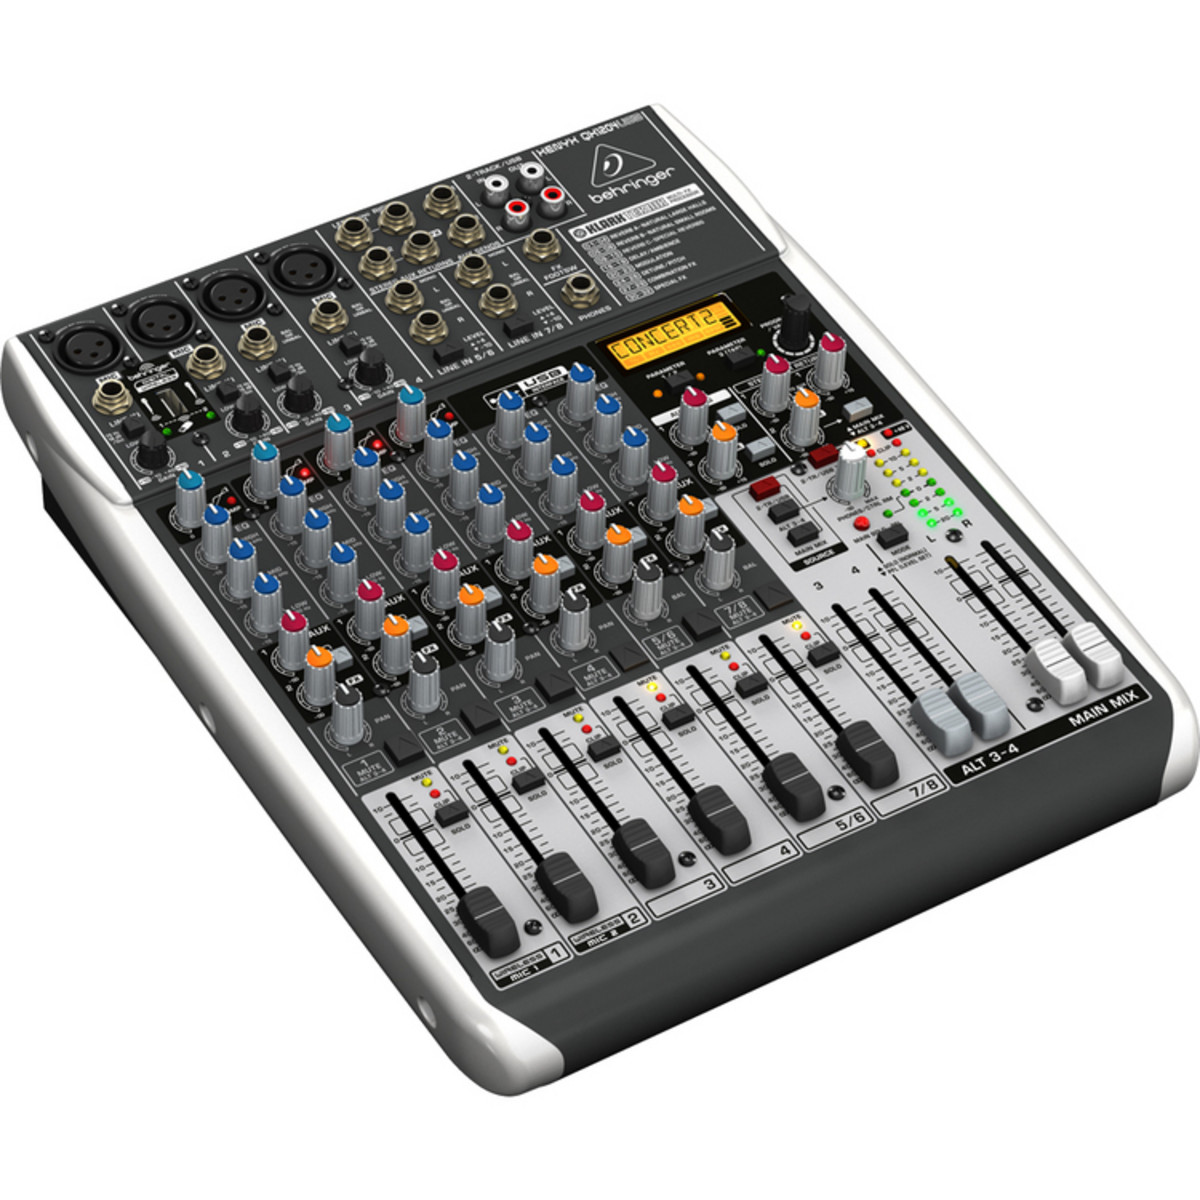 Table de mixage behringer xenyx qx1204usb usb ex demo - Table de mixage professionnelle studio ...